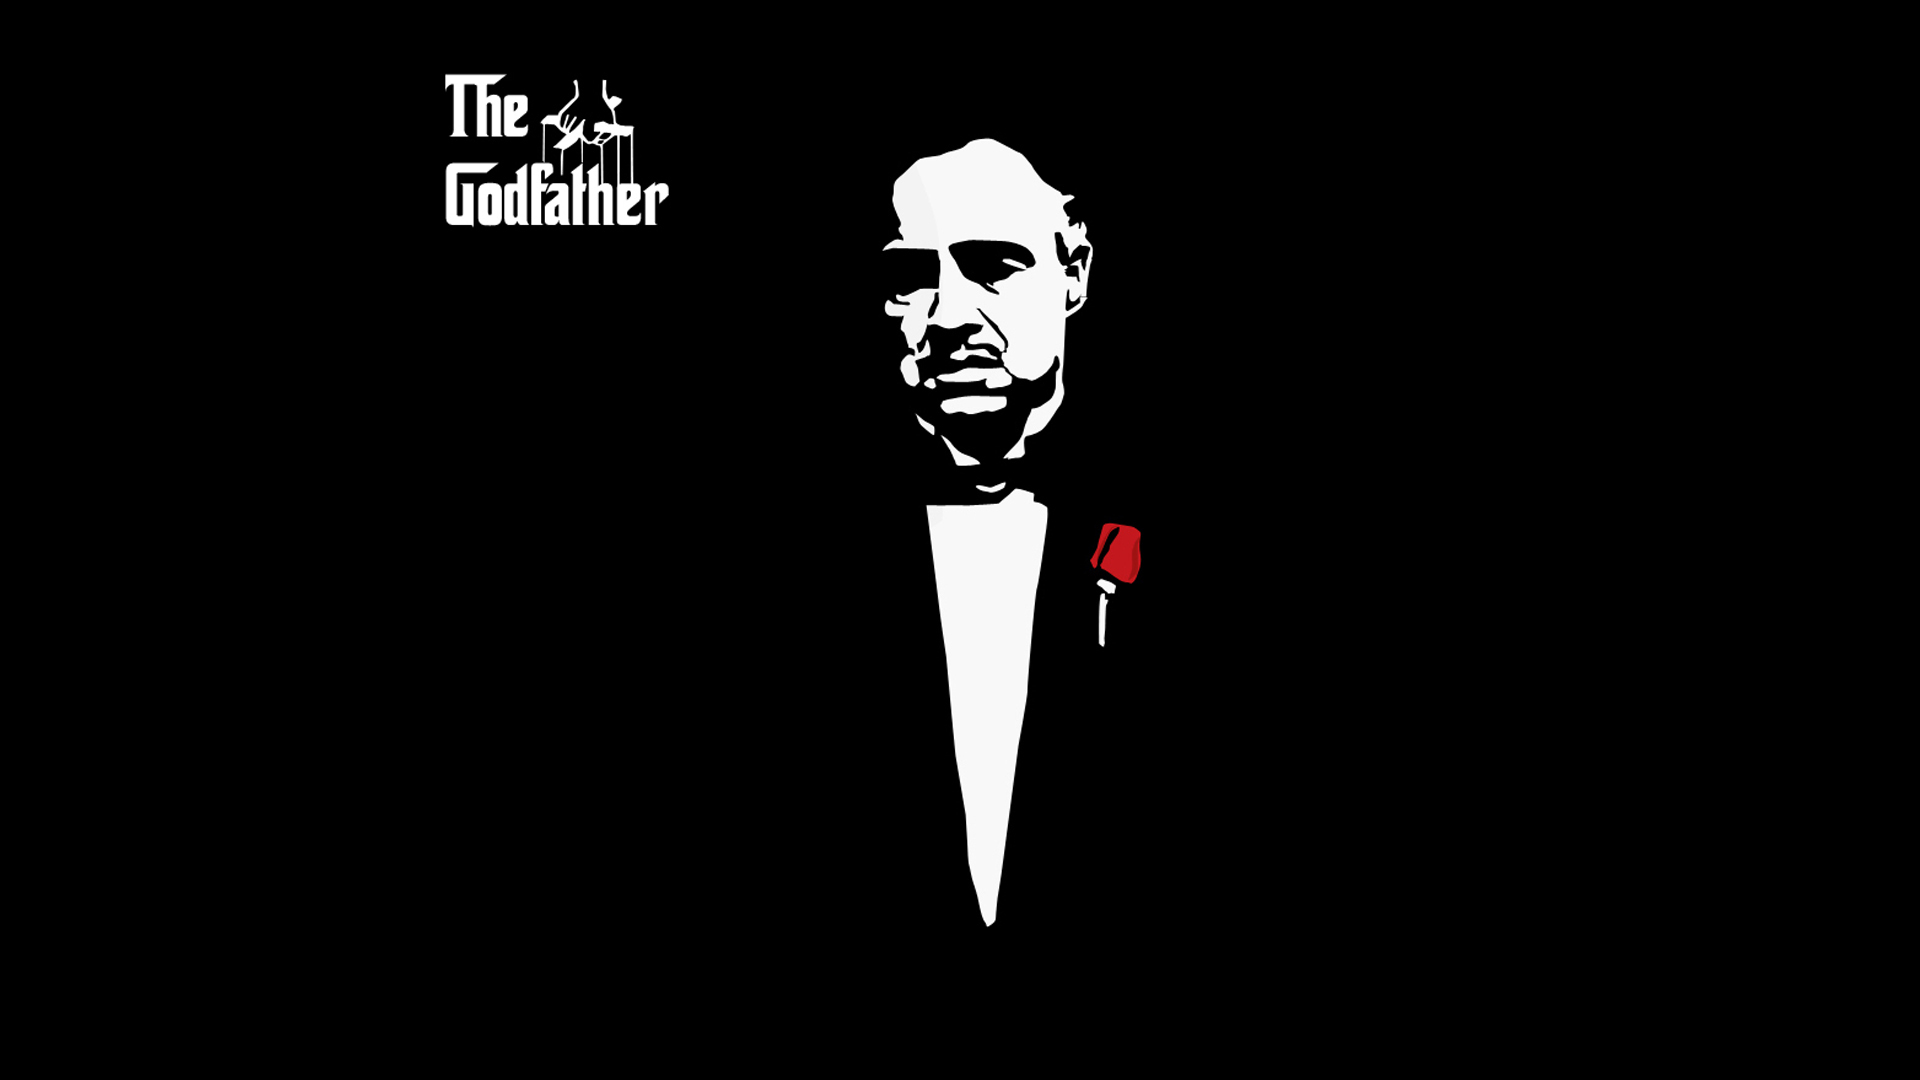 Don Vito Corleone   The Godfather wallpaper 20359 1920x1080